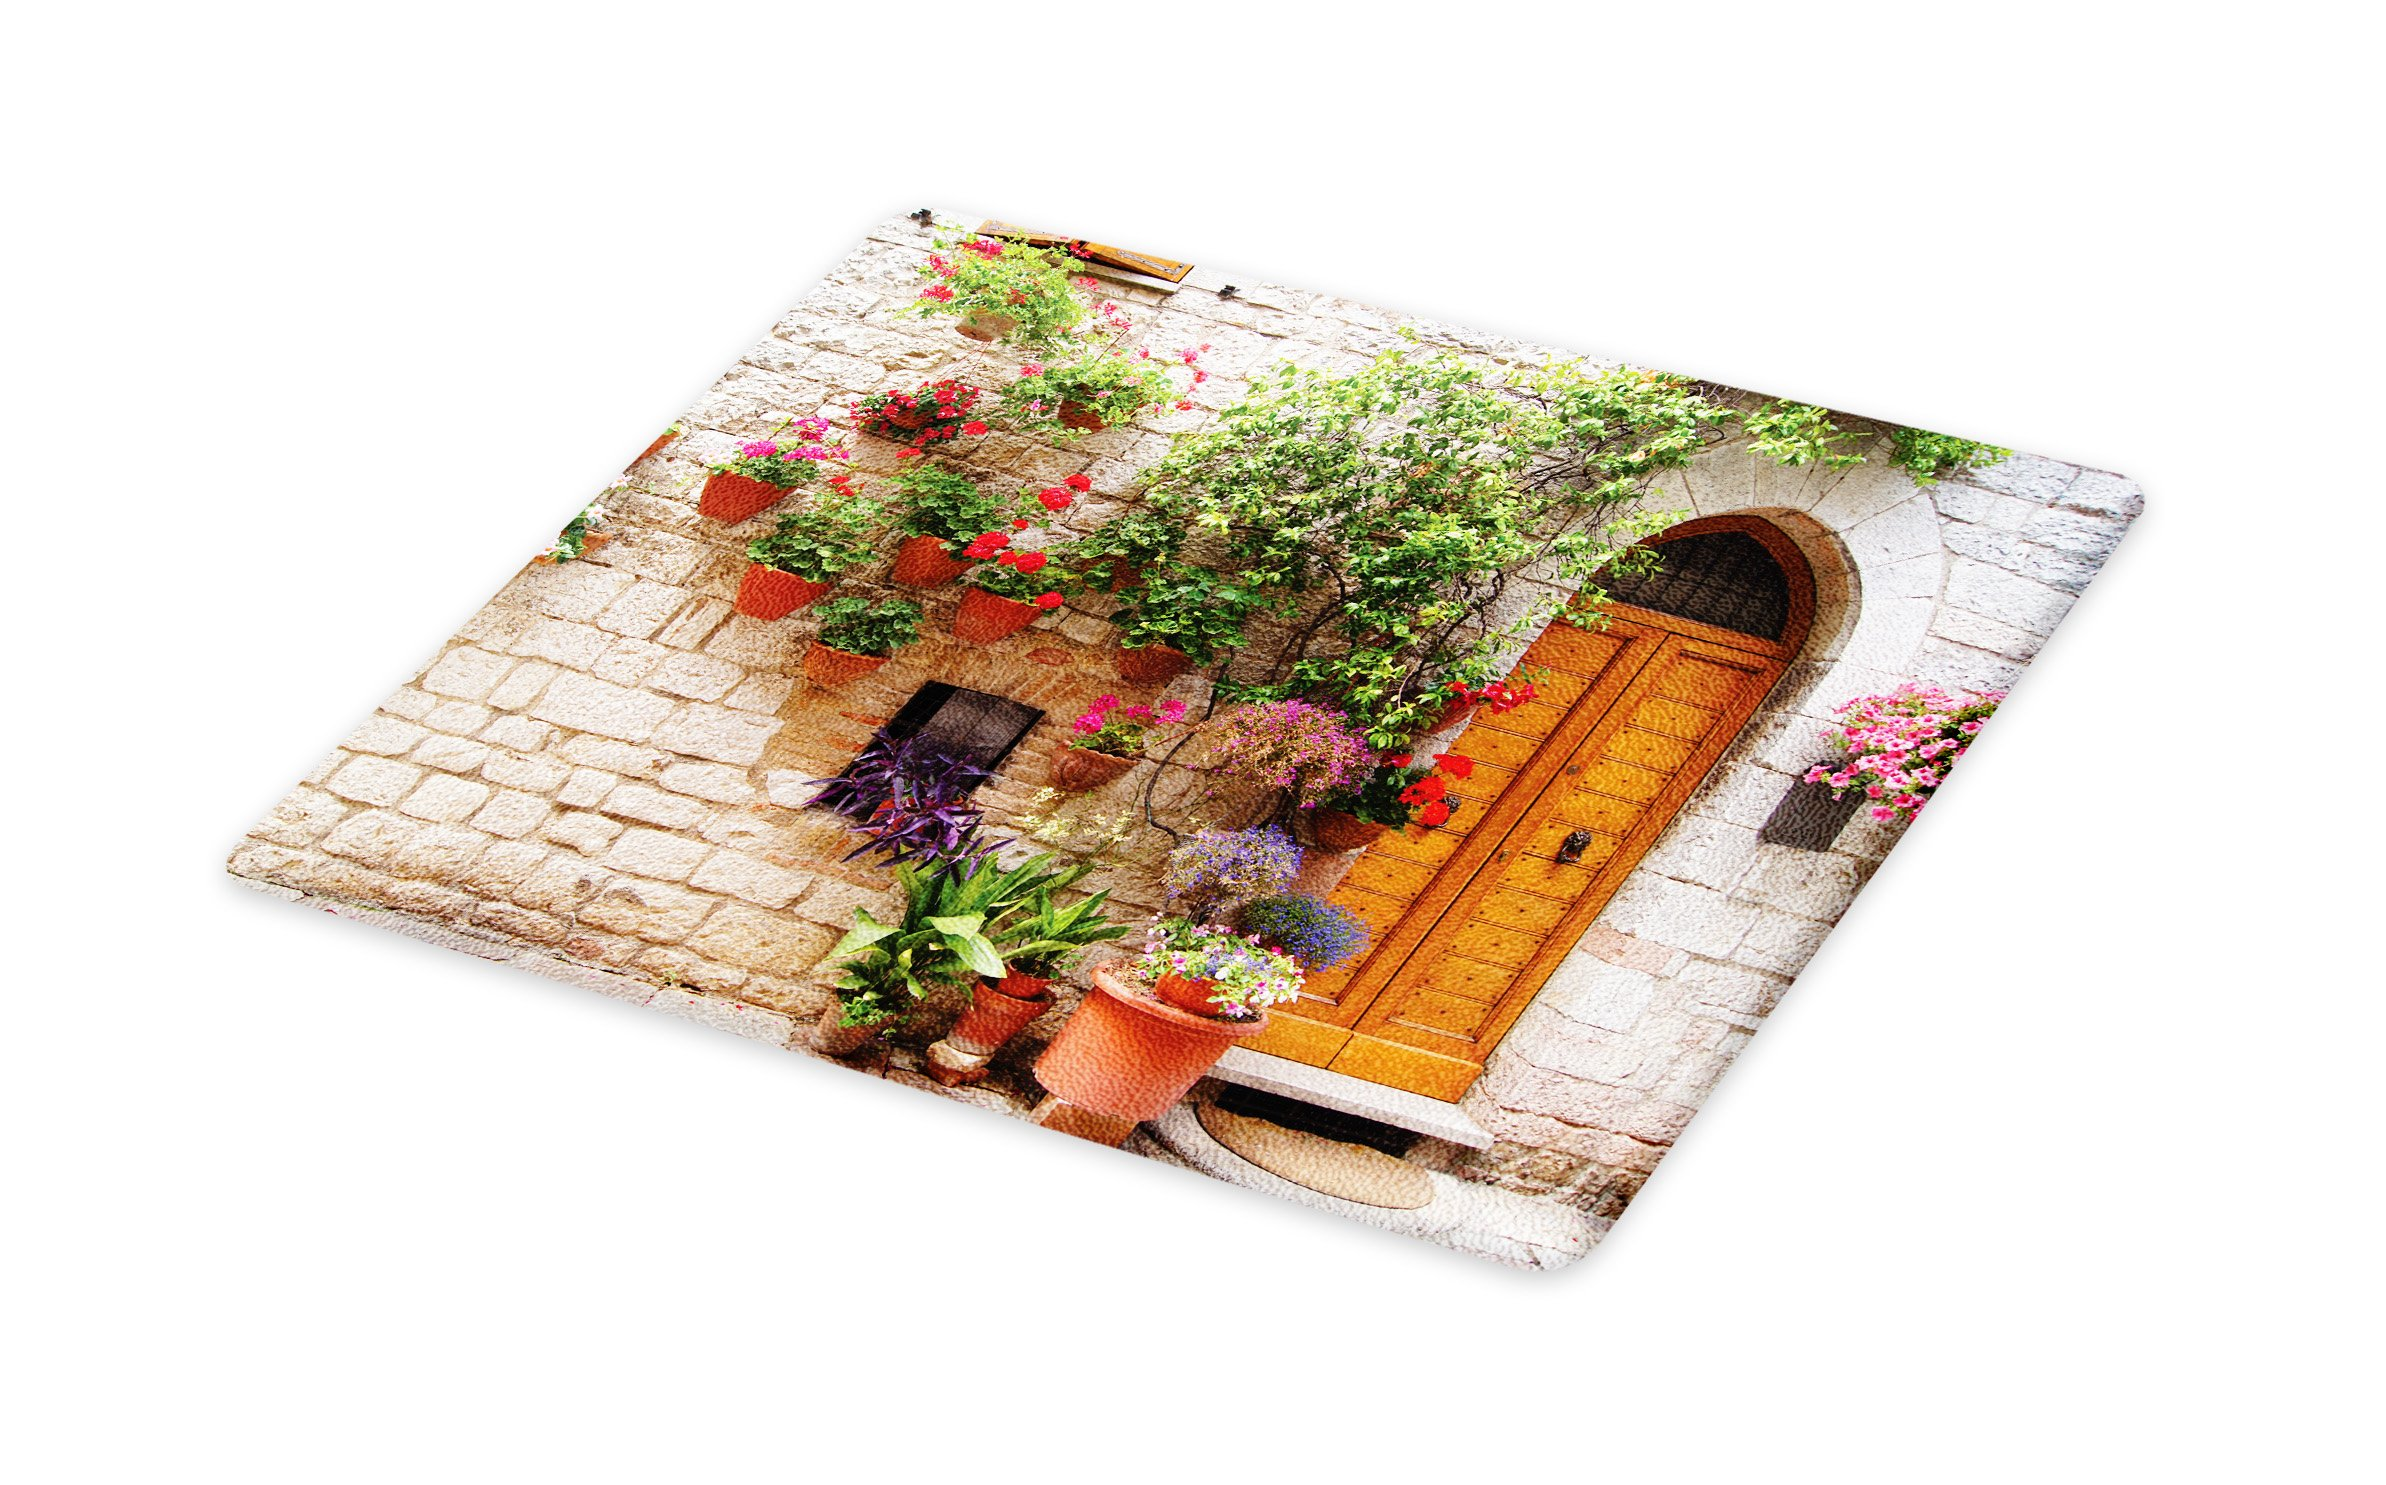 Lunarable Tuscan Cutting Board, Begonia Blossoms in Box Window Wooden Shutters Brick Wall Romagna Italy, Decorative Tempered Glass Cutting and Serving Board, Large Size, Orange White Green